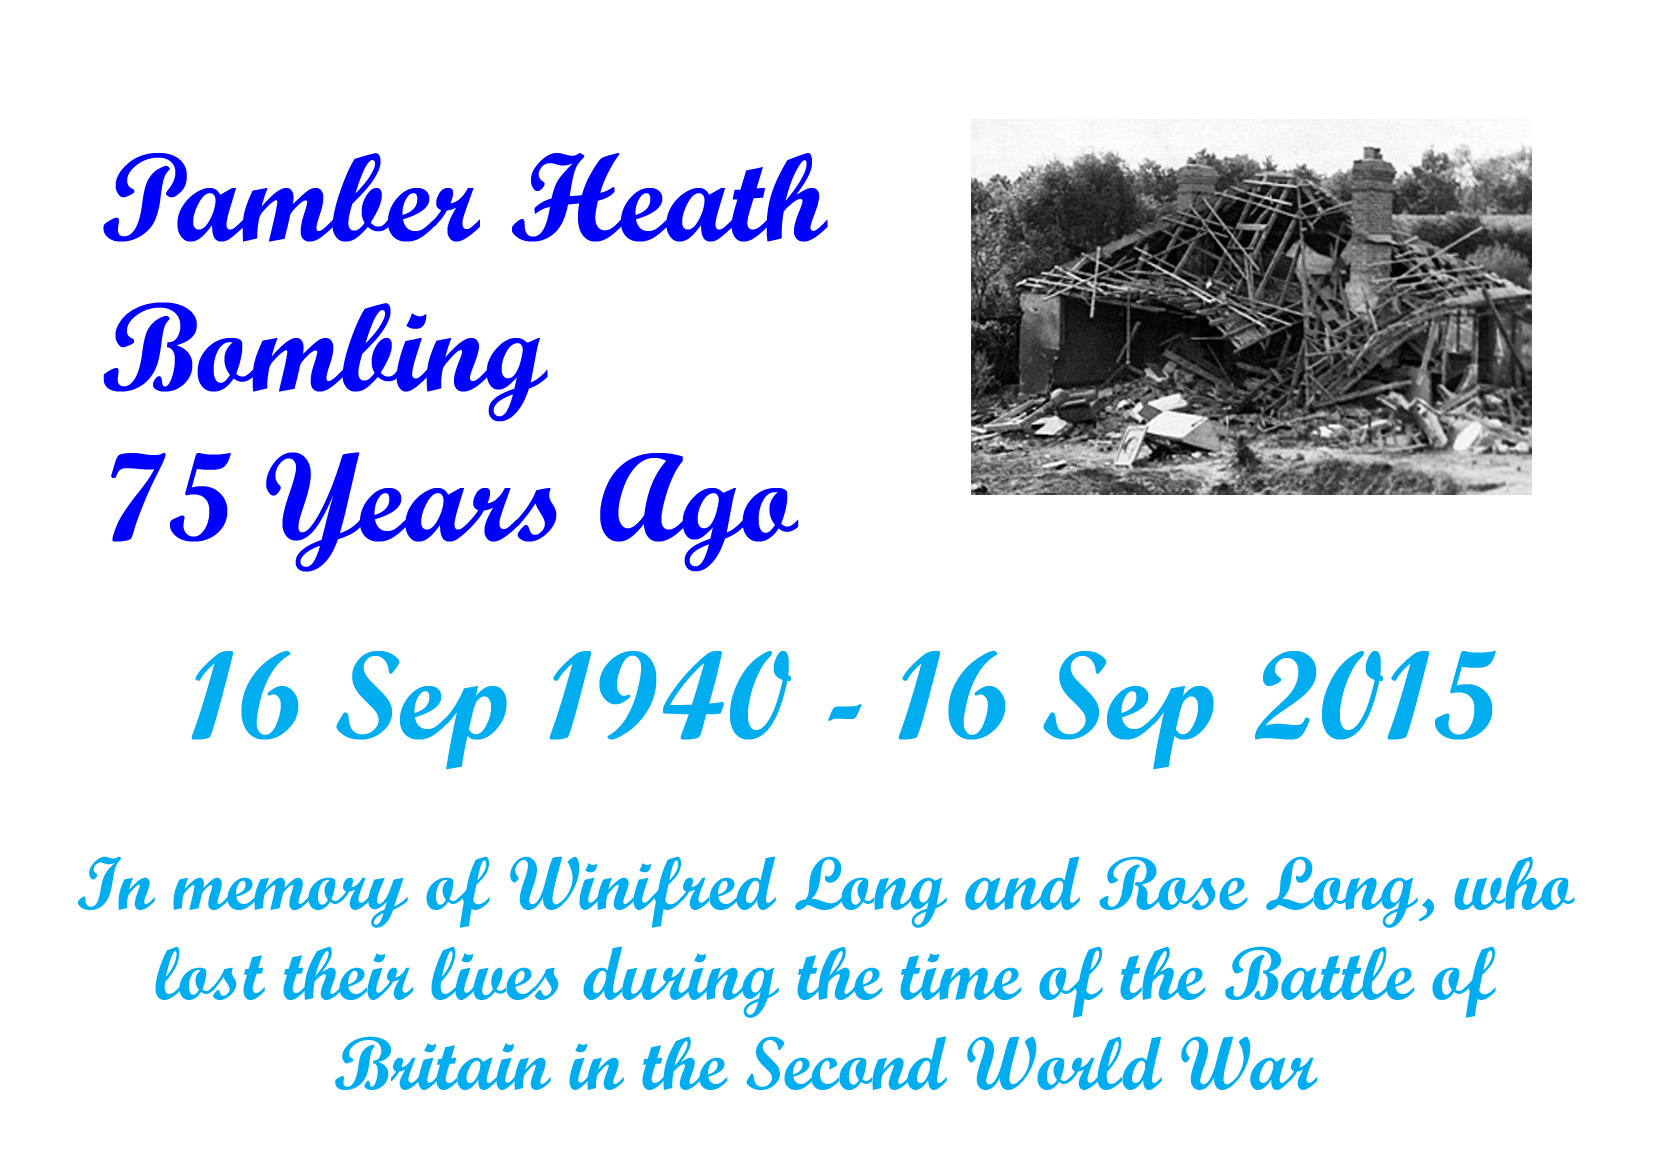 75th Anniversary of the bombing of Pamber Heath